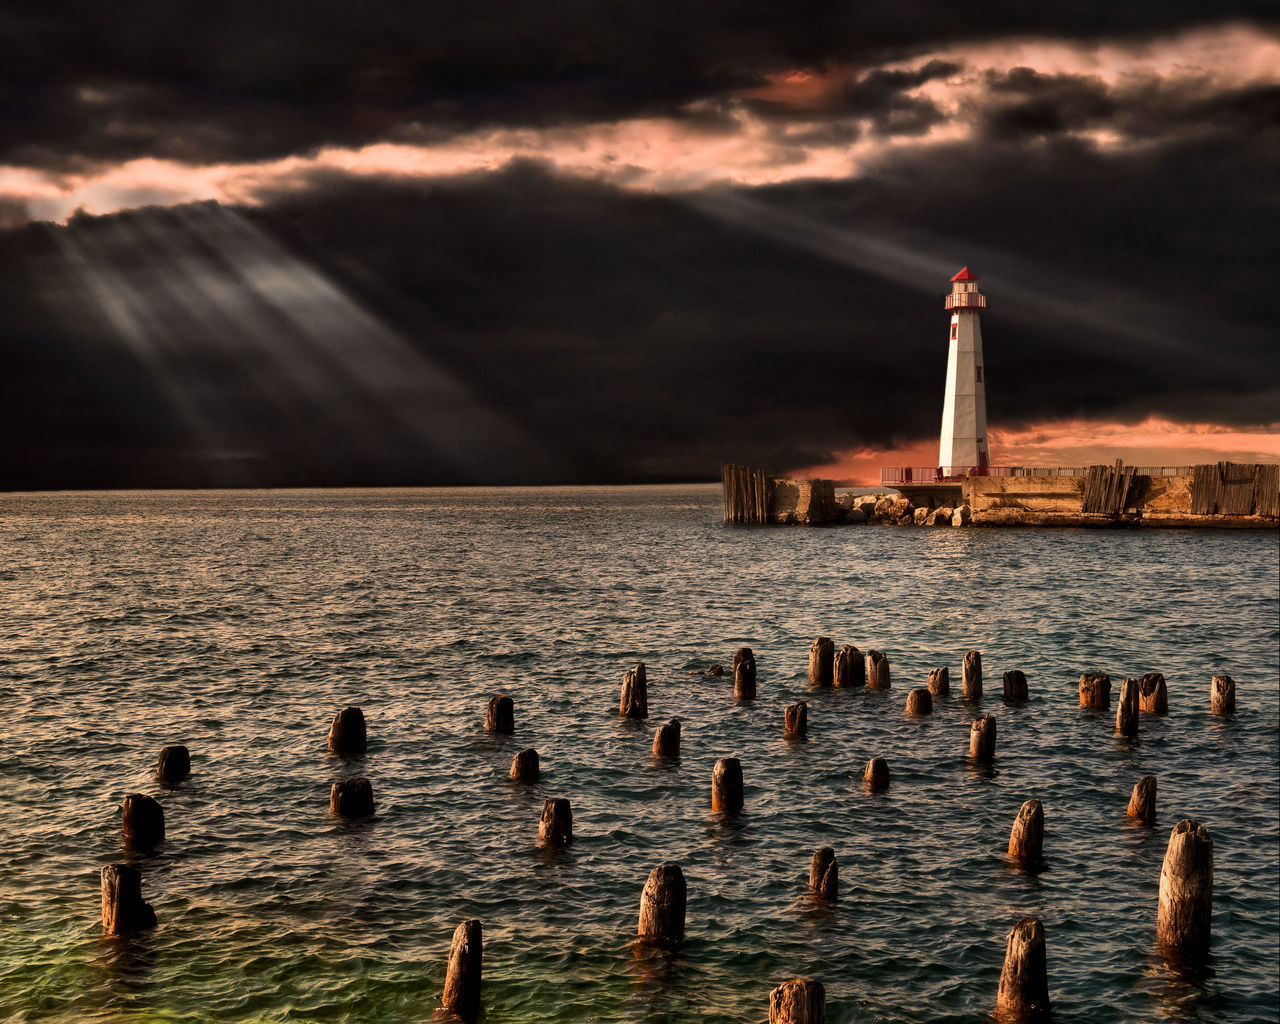 Architecture Beams, Beauty In Nature Cloud - Sky Day Light House Lighthouse Nature No People Outdoors Reflections Sea Sky Sunset Tranquility Water